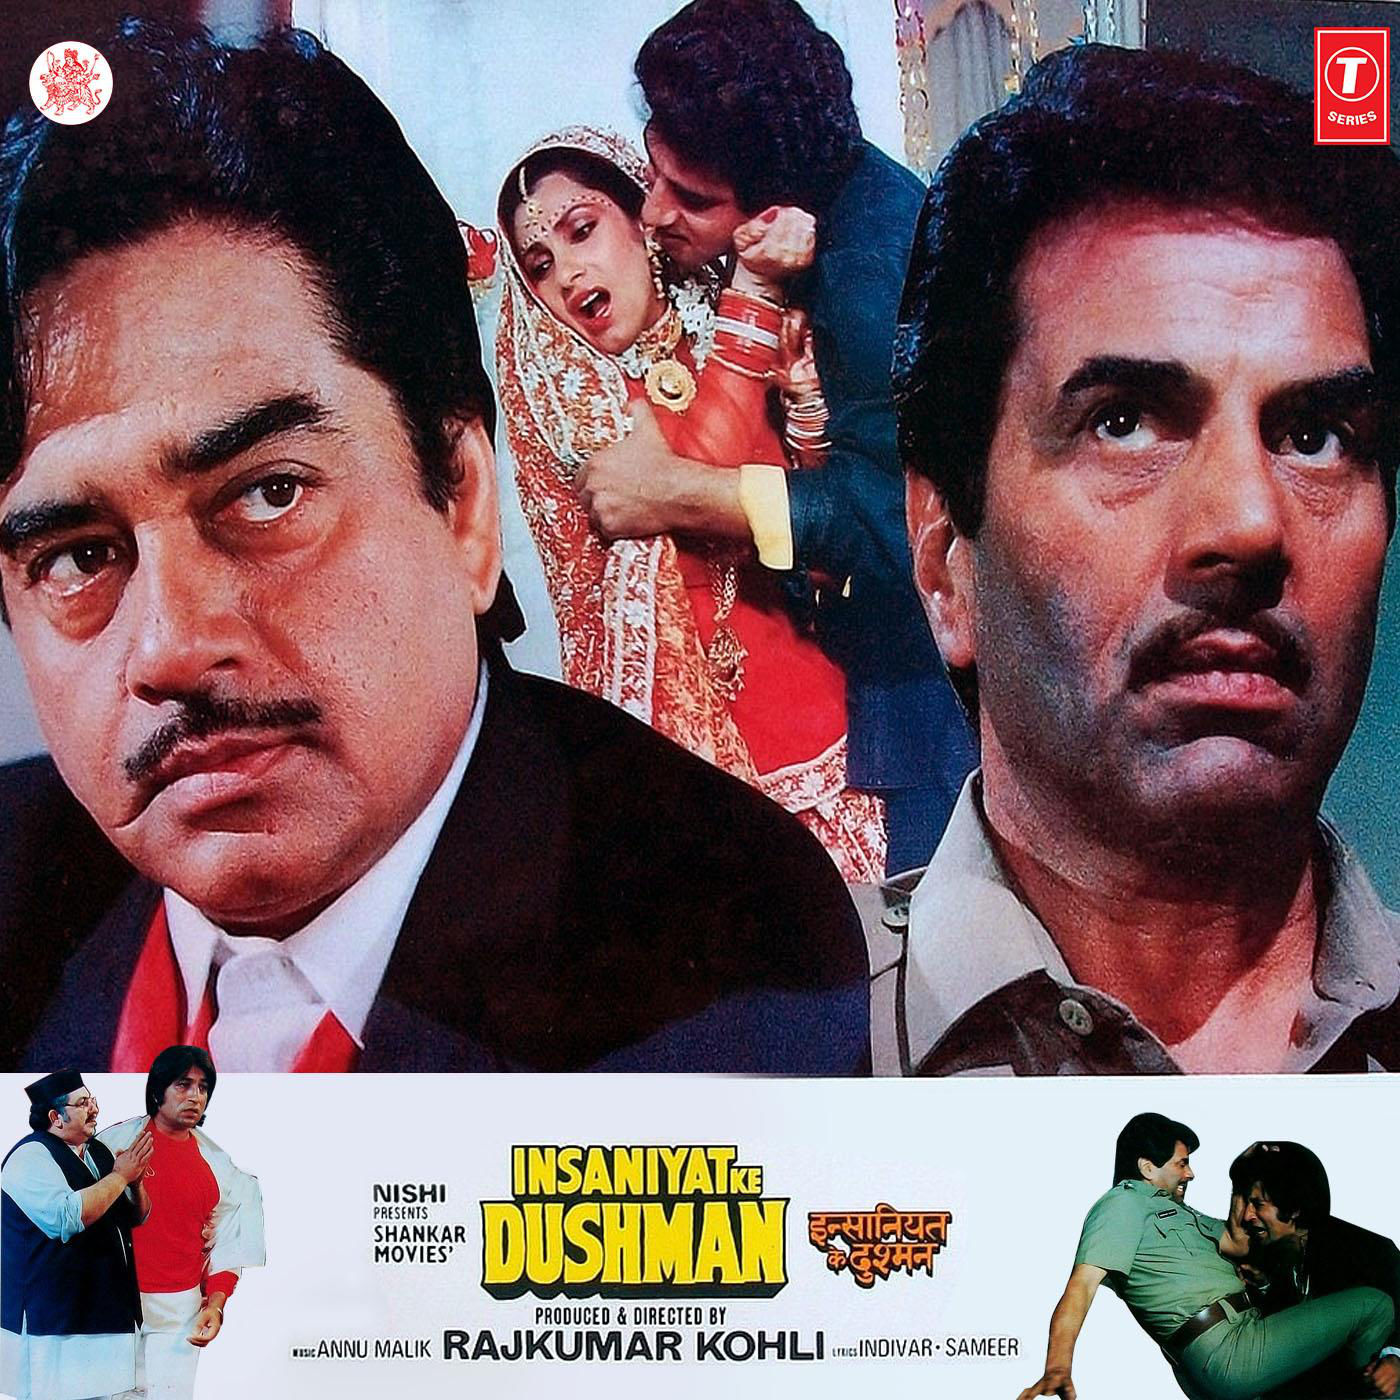 Insaniyat ke dushman movie